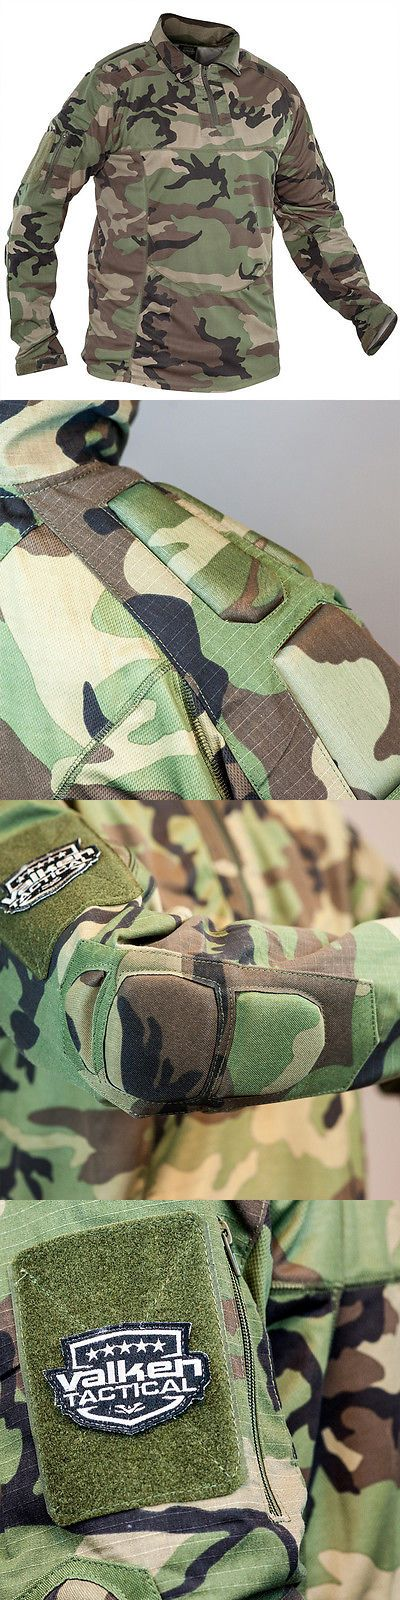 Jerseys and Shirts 165939: Valken Tango Combat Shirt - Woodland -> BUY IT NOW ONLY: $74.95 on eBay!